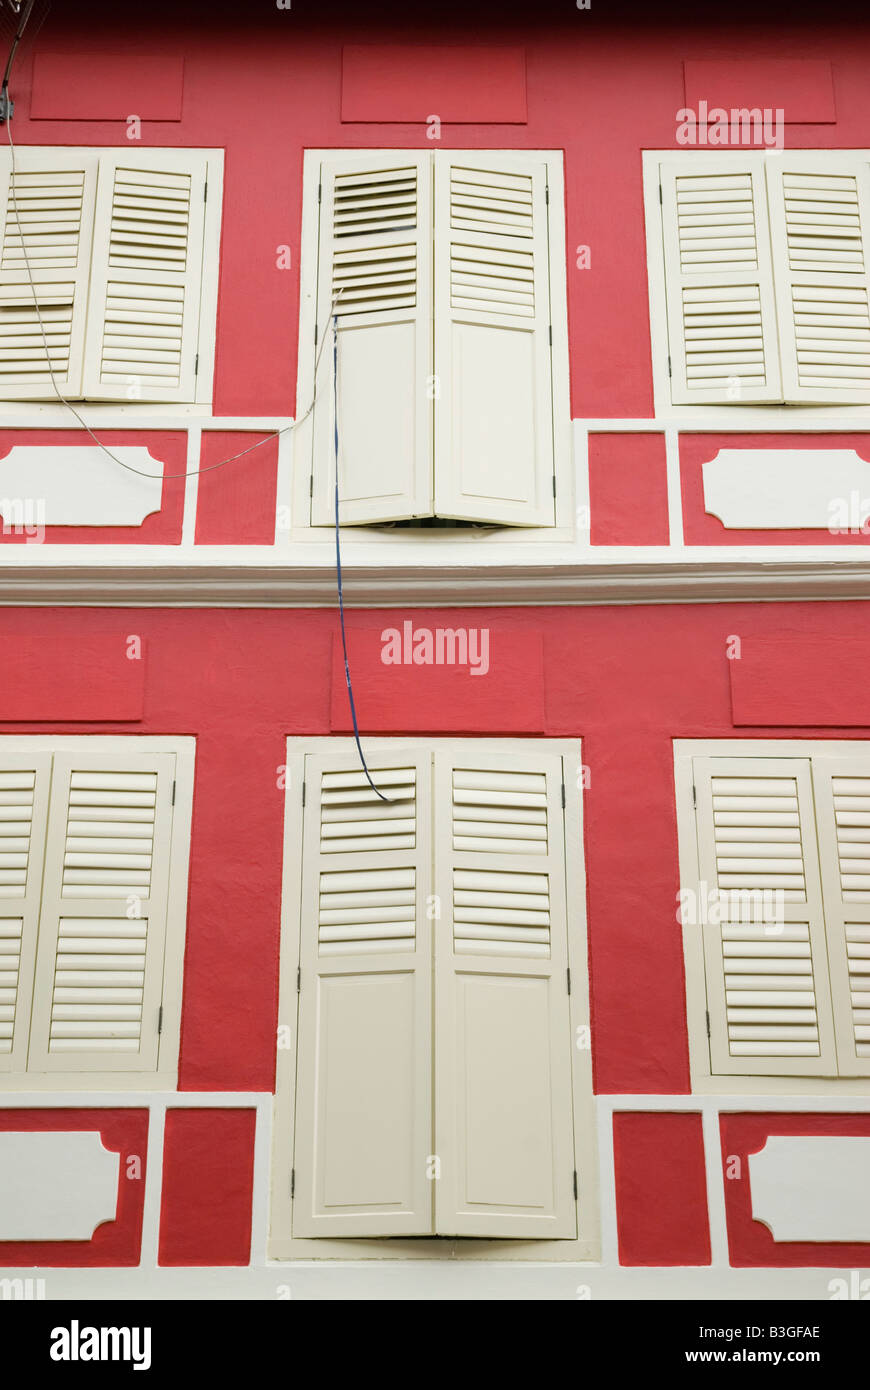 Red and white building facade Chinatown, Singapore - Stock Image